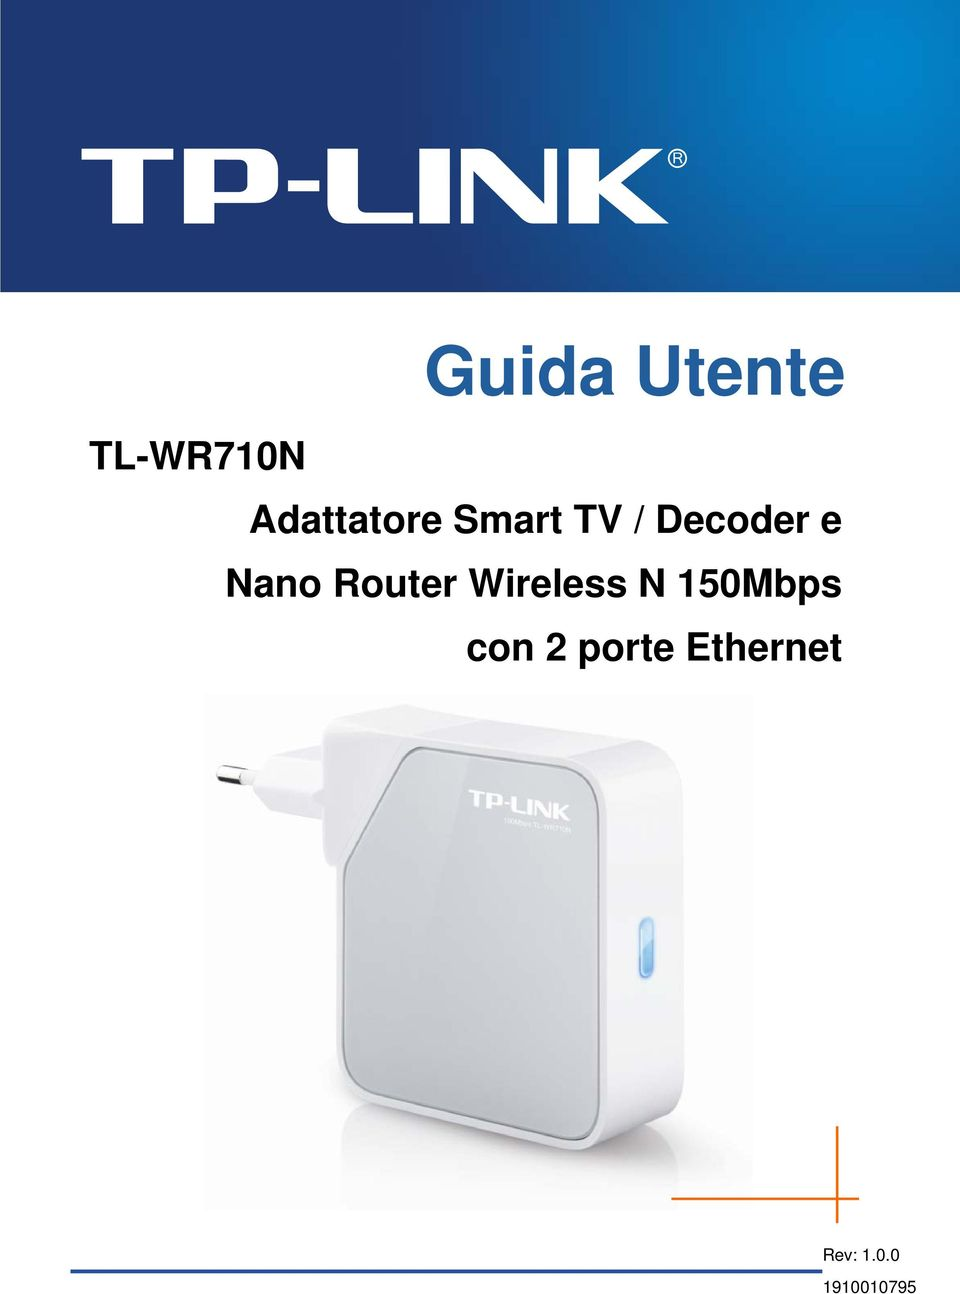 Nano Router Wireless N 150Mbps